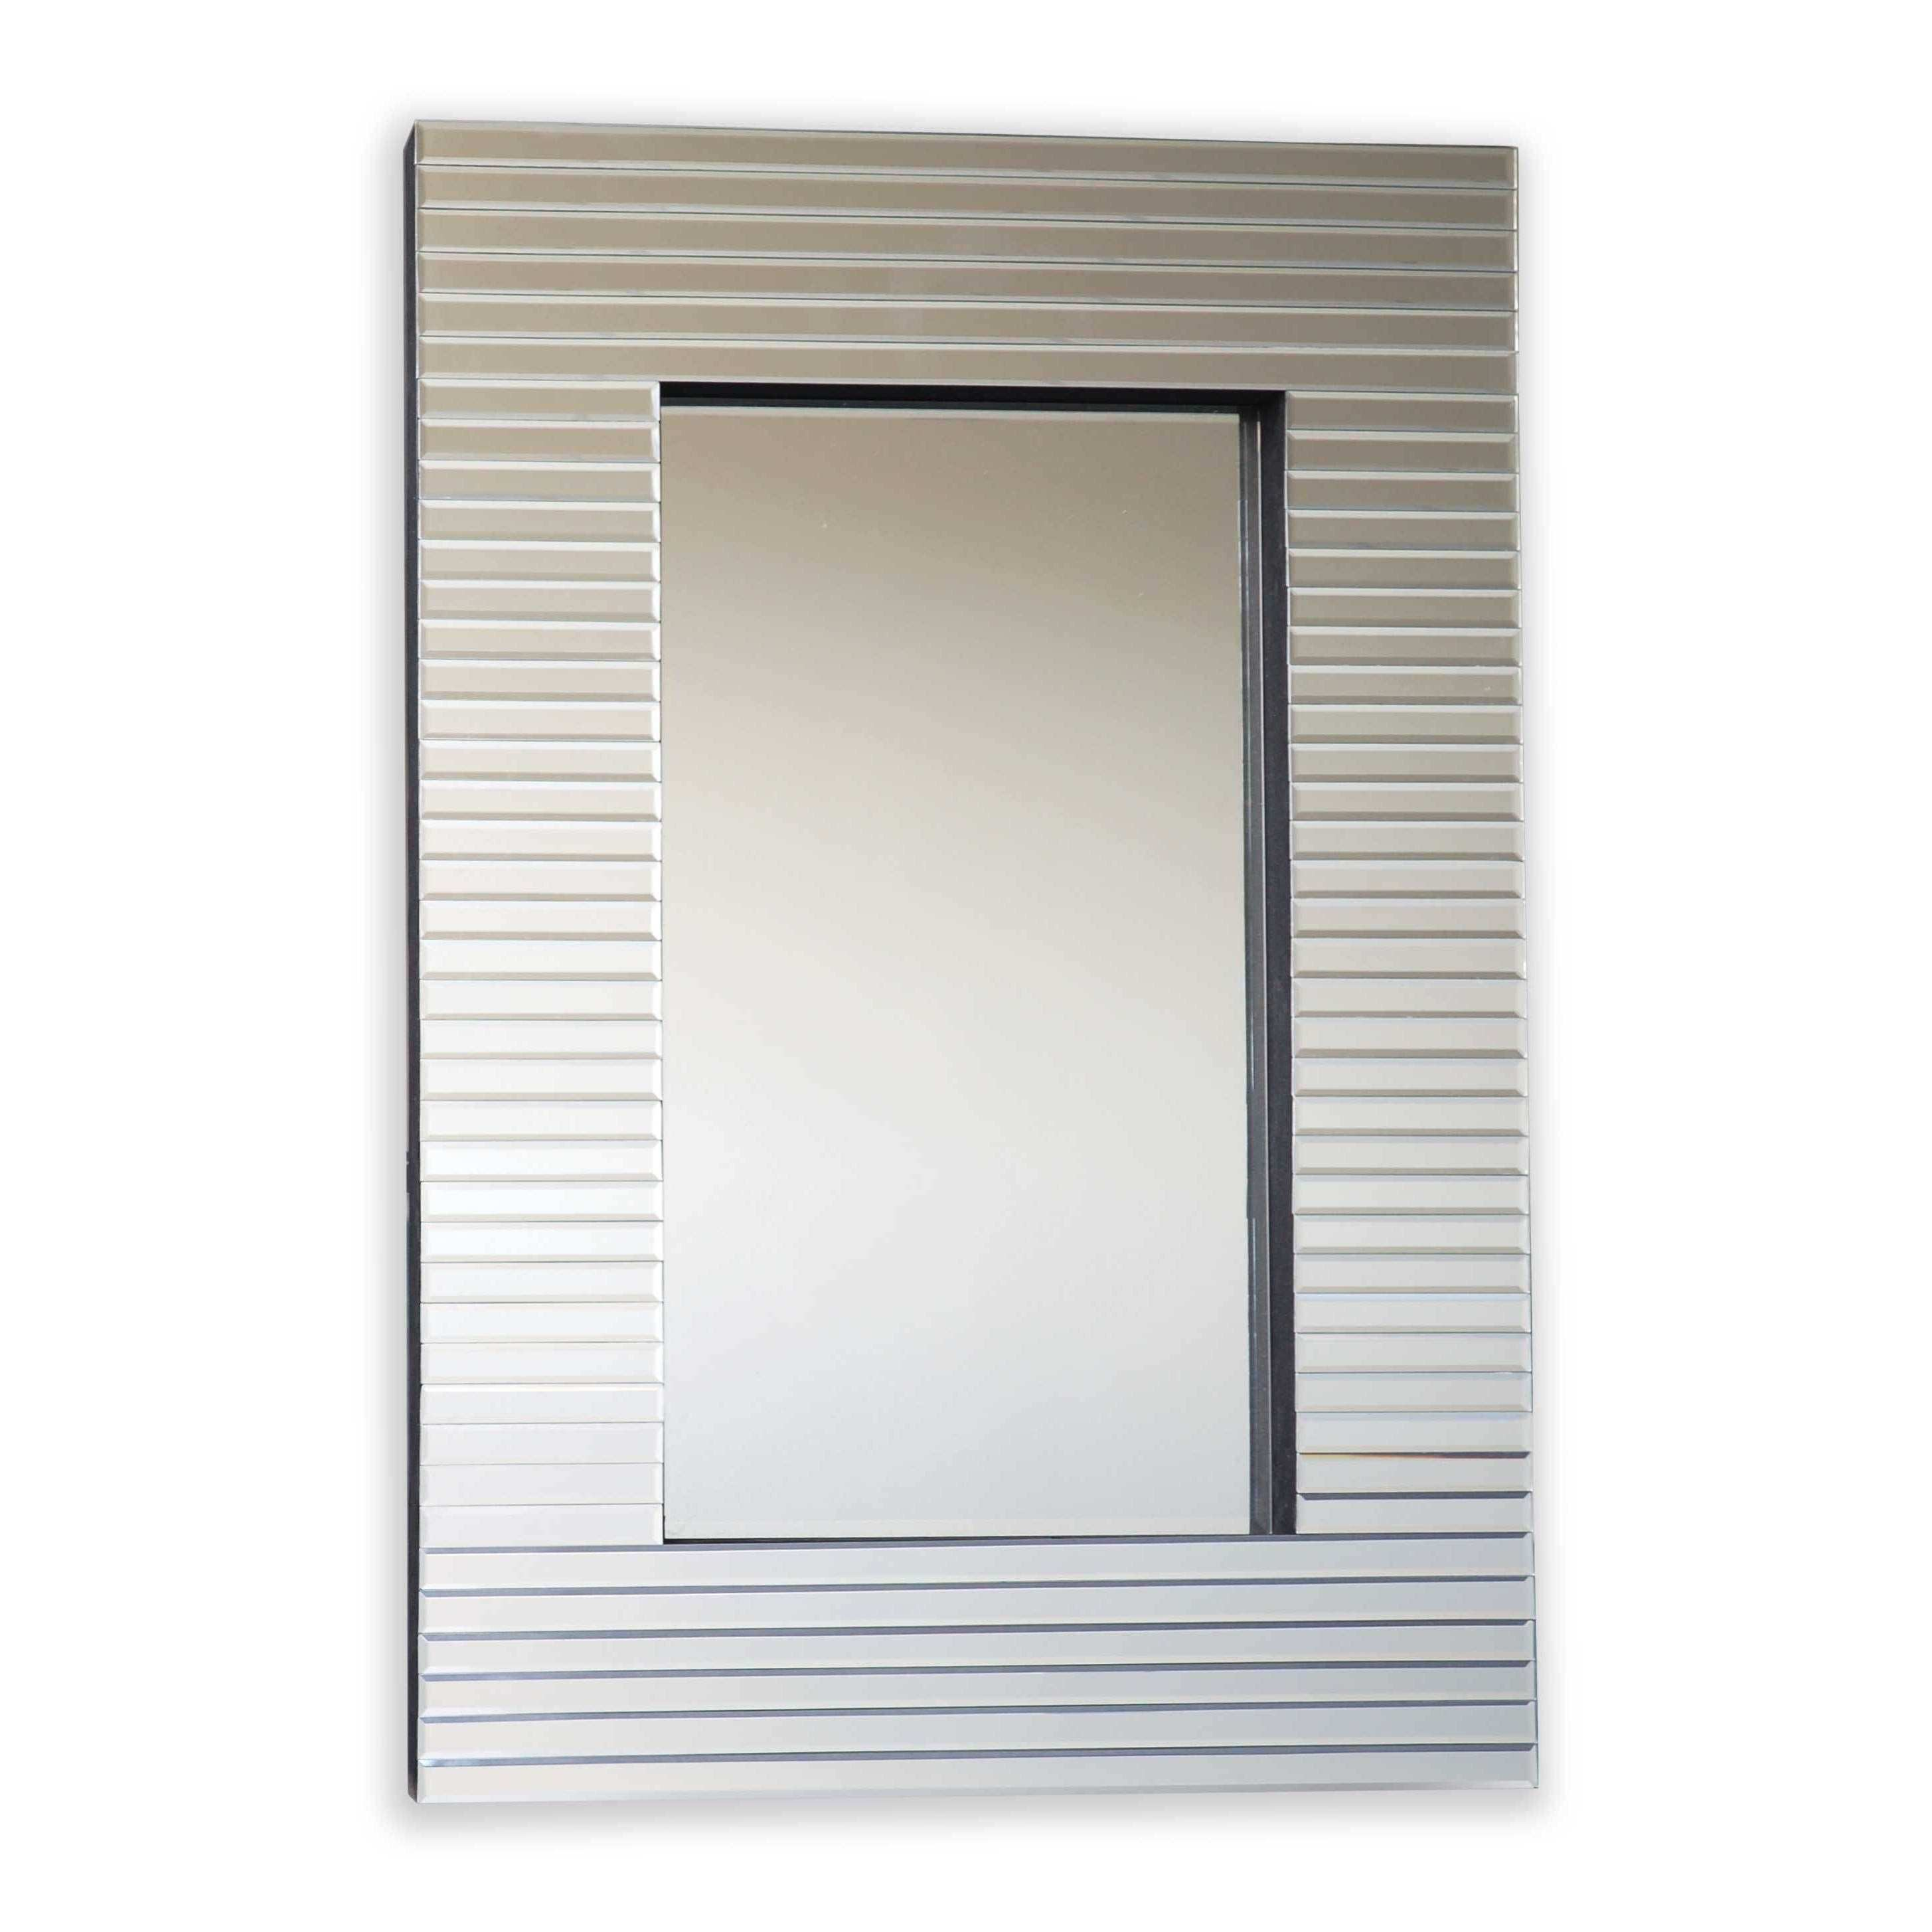 Selections by Chaumont Miami Silver Glass Beveled Ridge Wall Mirror